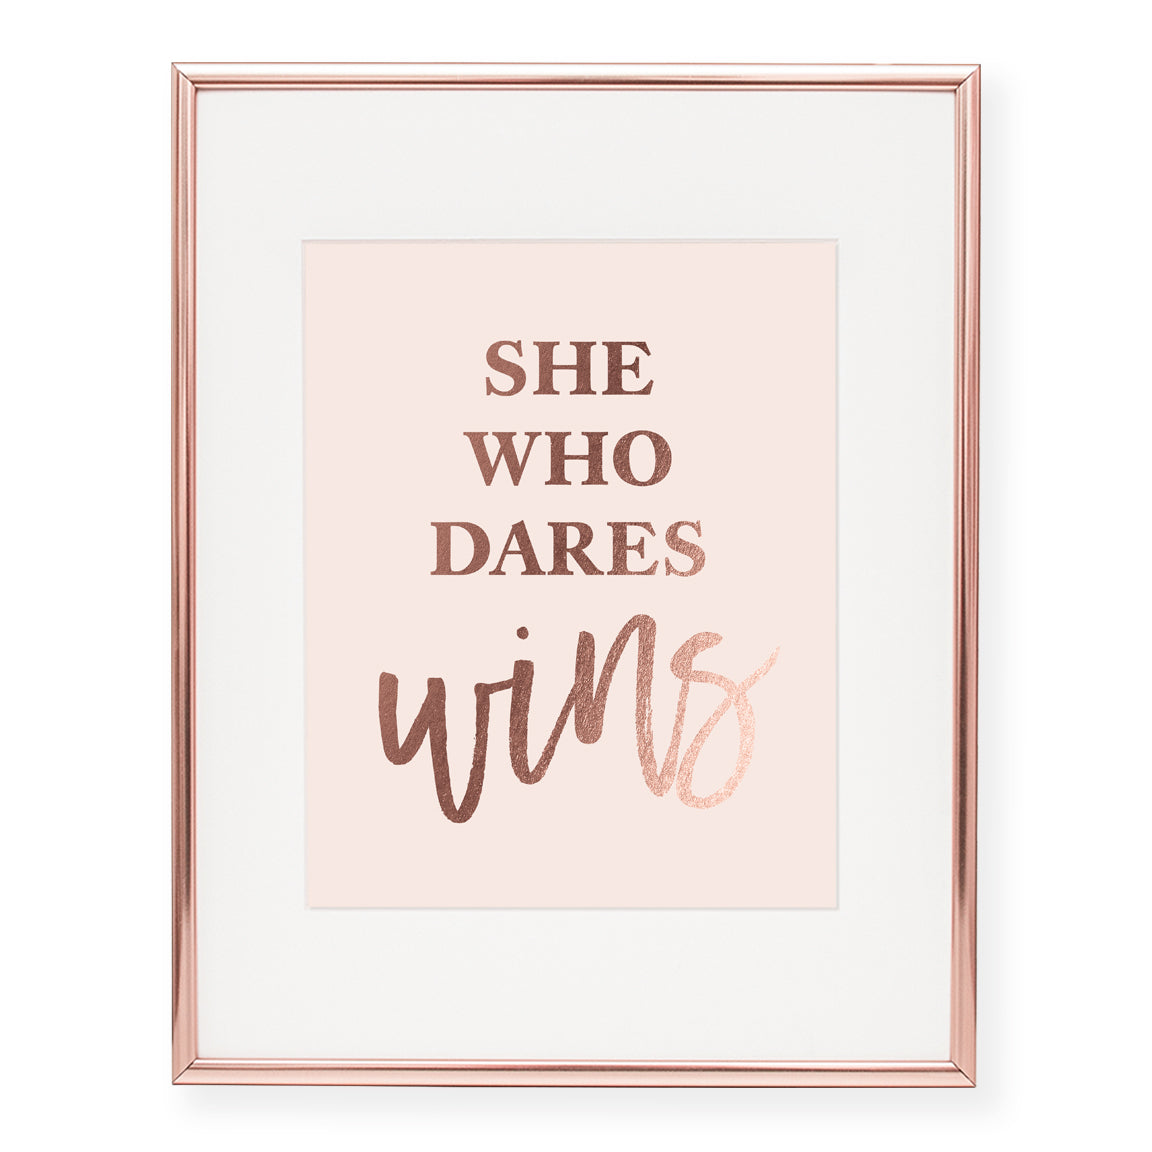 She Who Dares Foil Art Print